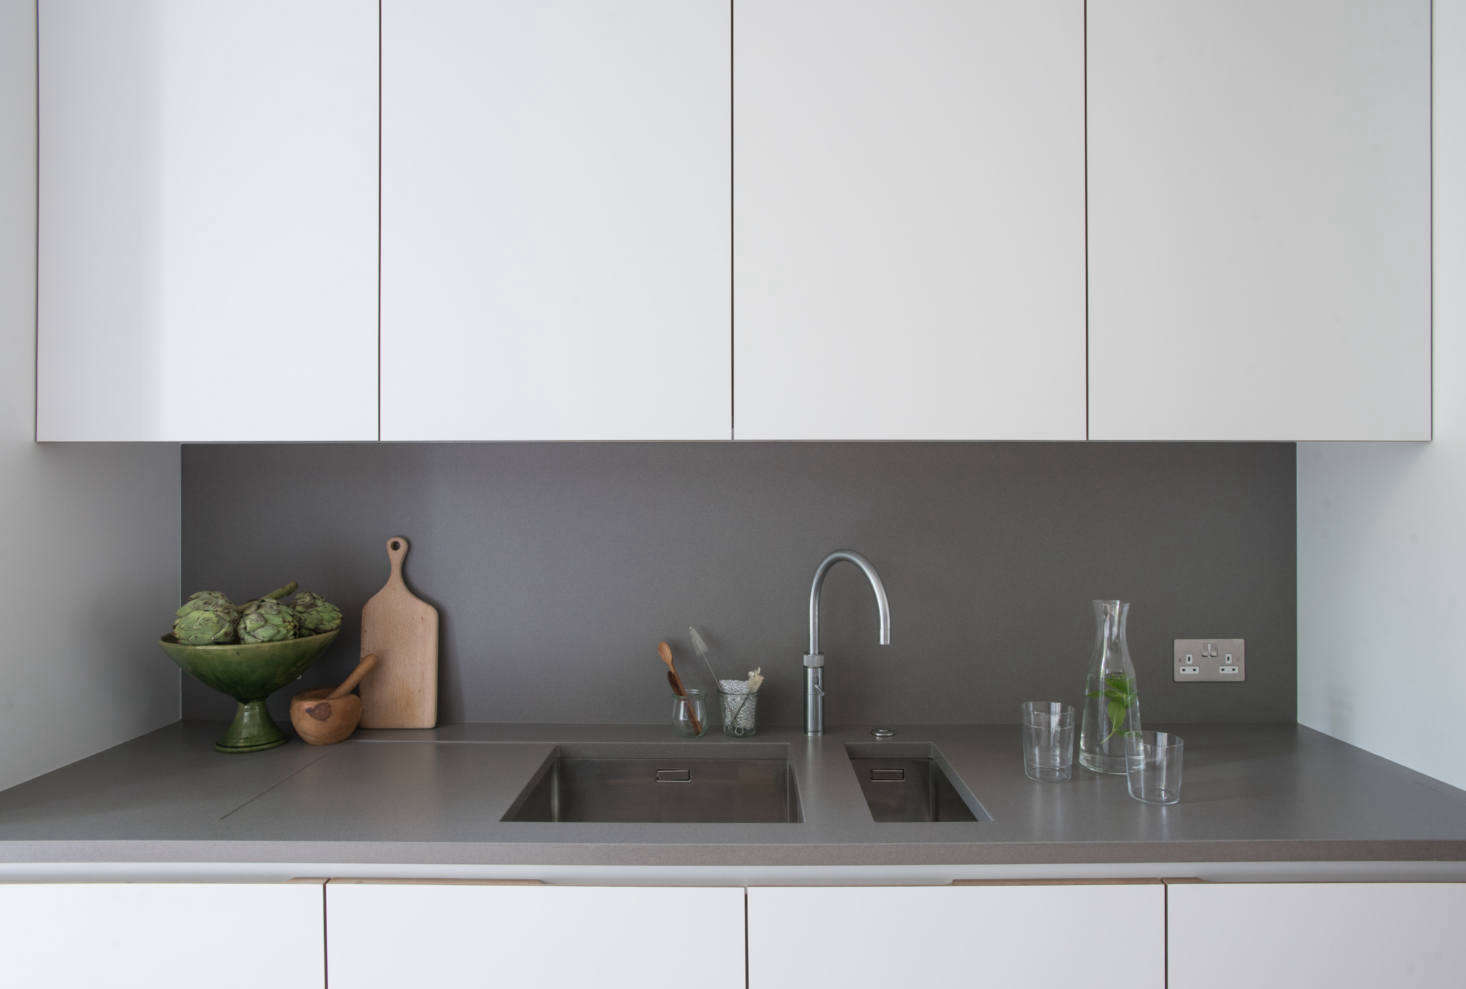 The cabinets are detailed with birch plywood pulls and interiors. Jack notes that the cabinets on this side were designed &#8